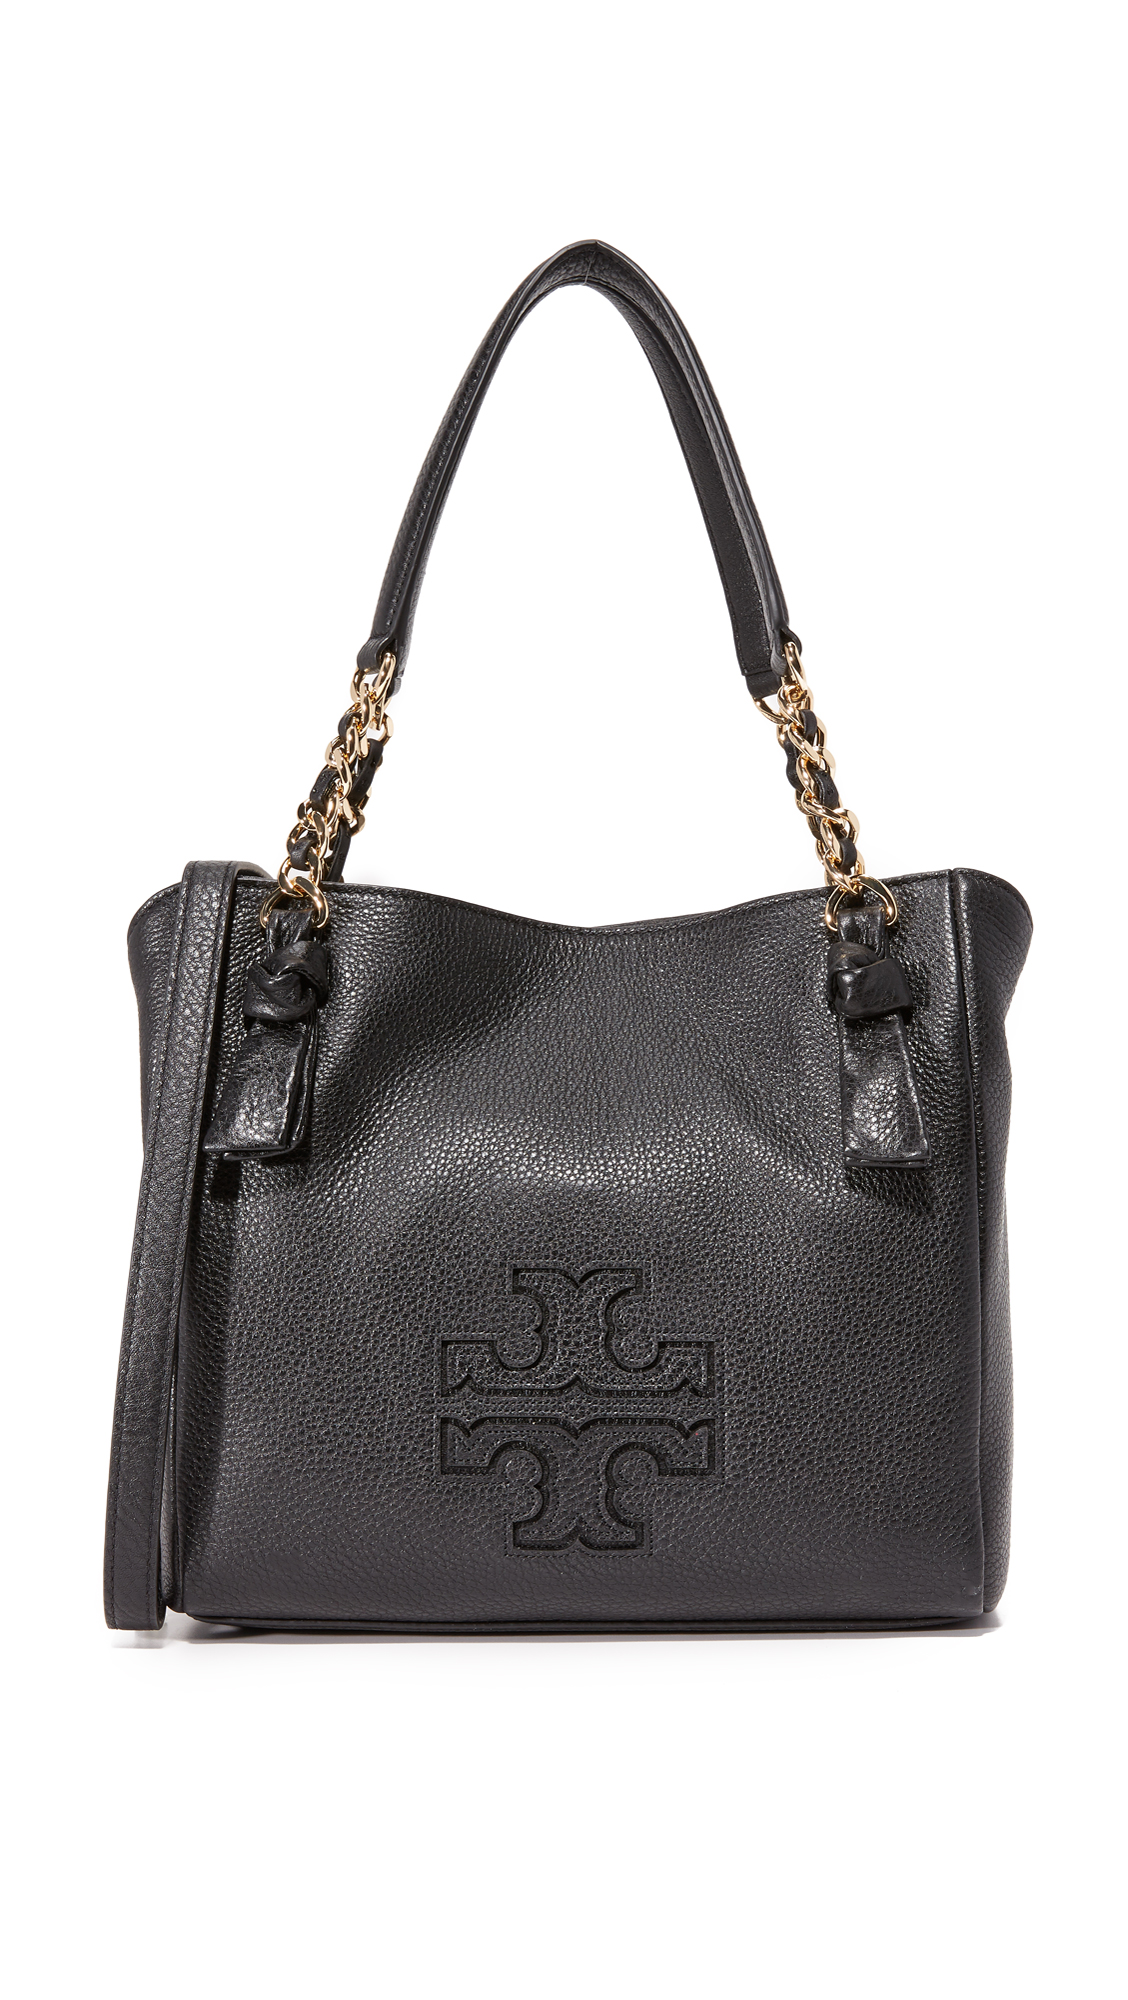 2480a4f44b2a2 Tory Burch Harper Small Satchel